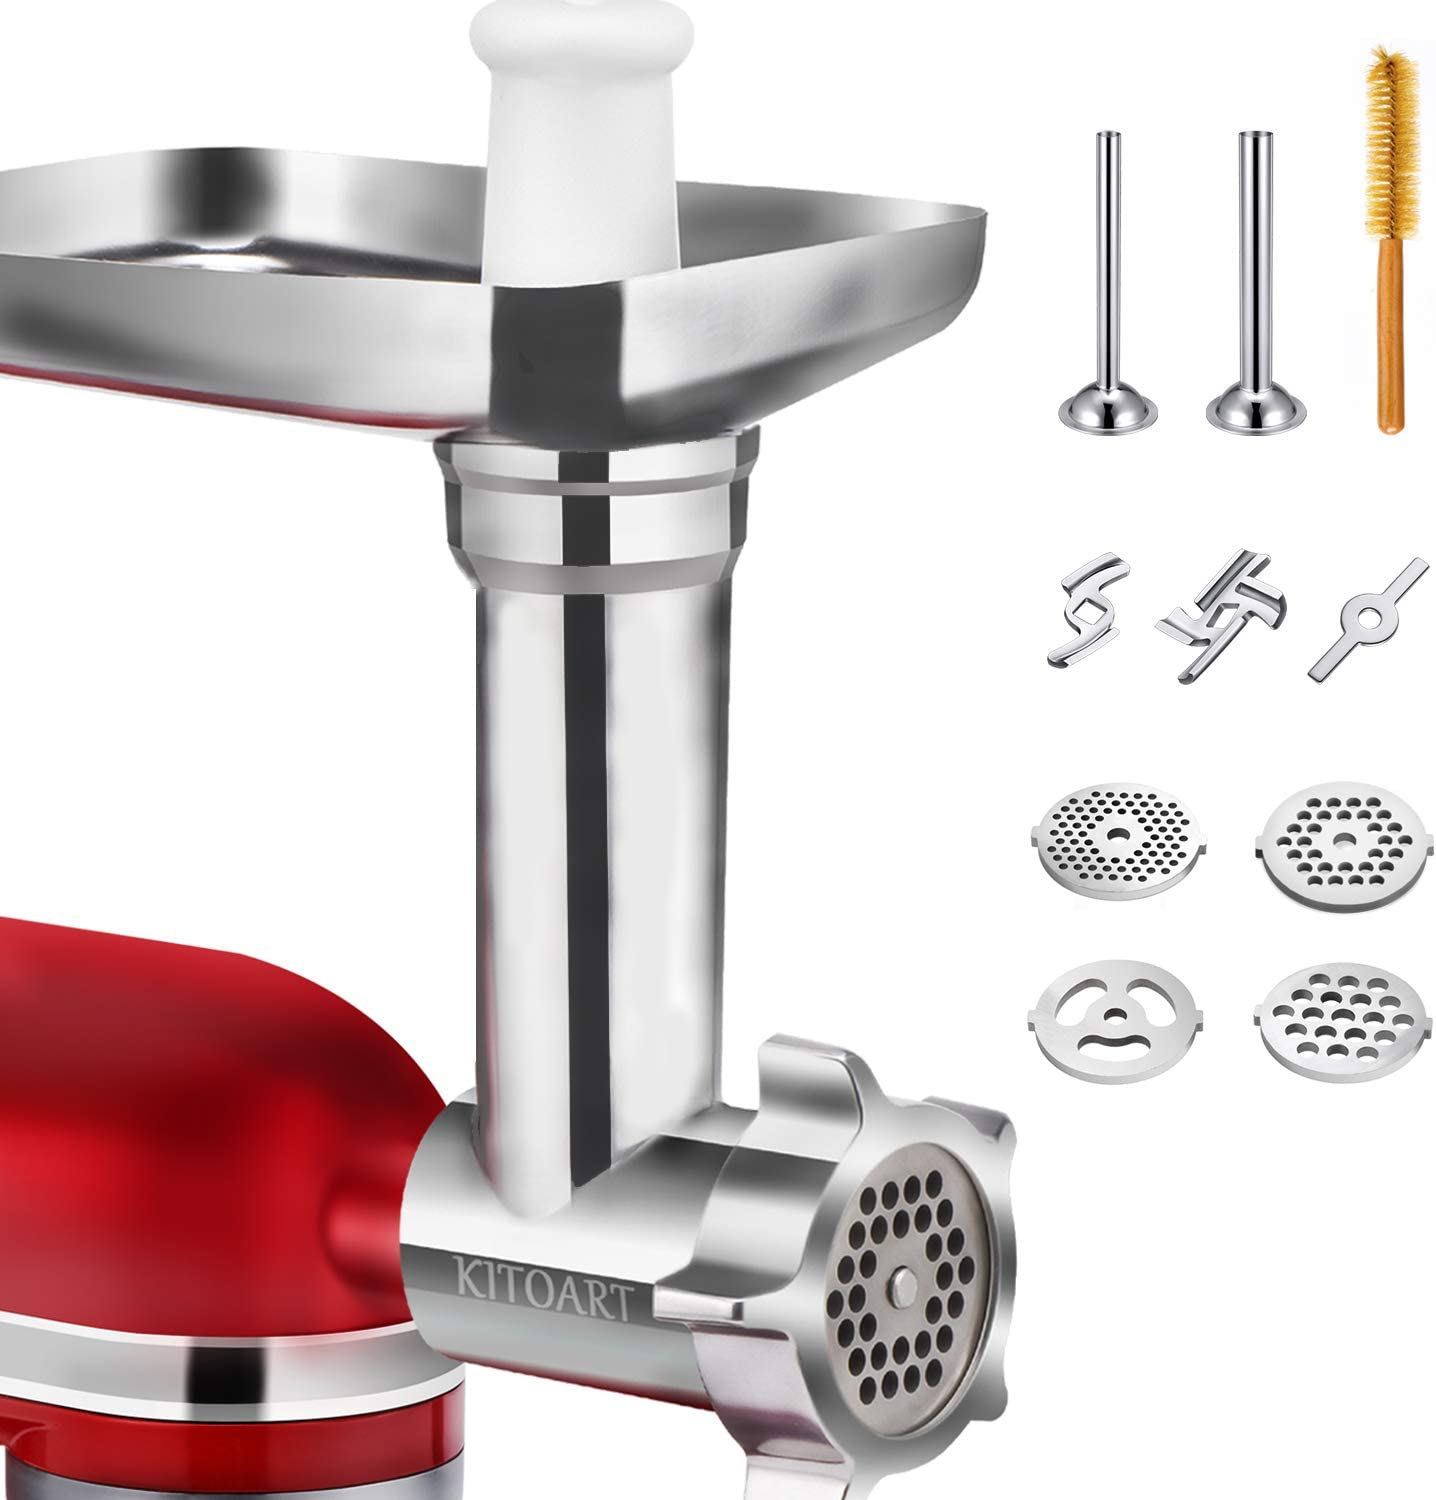 Metal Food Grinder Attachments for KitchenAid Stand Mixers, Durable Meat Grinder, Sausage Stuffer Attachment Compatible with All KitchenAid Stand Mixers